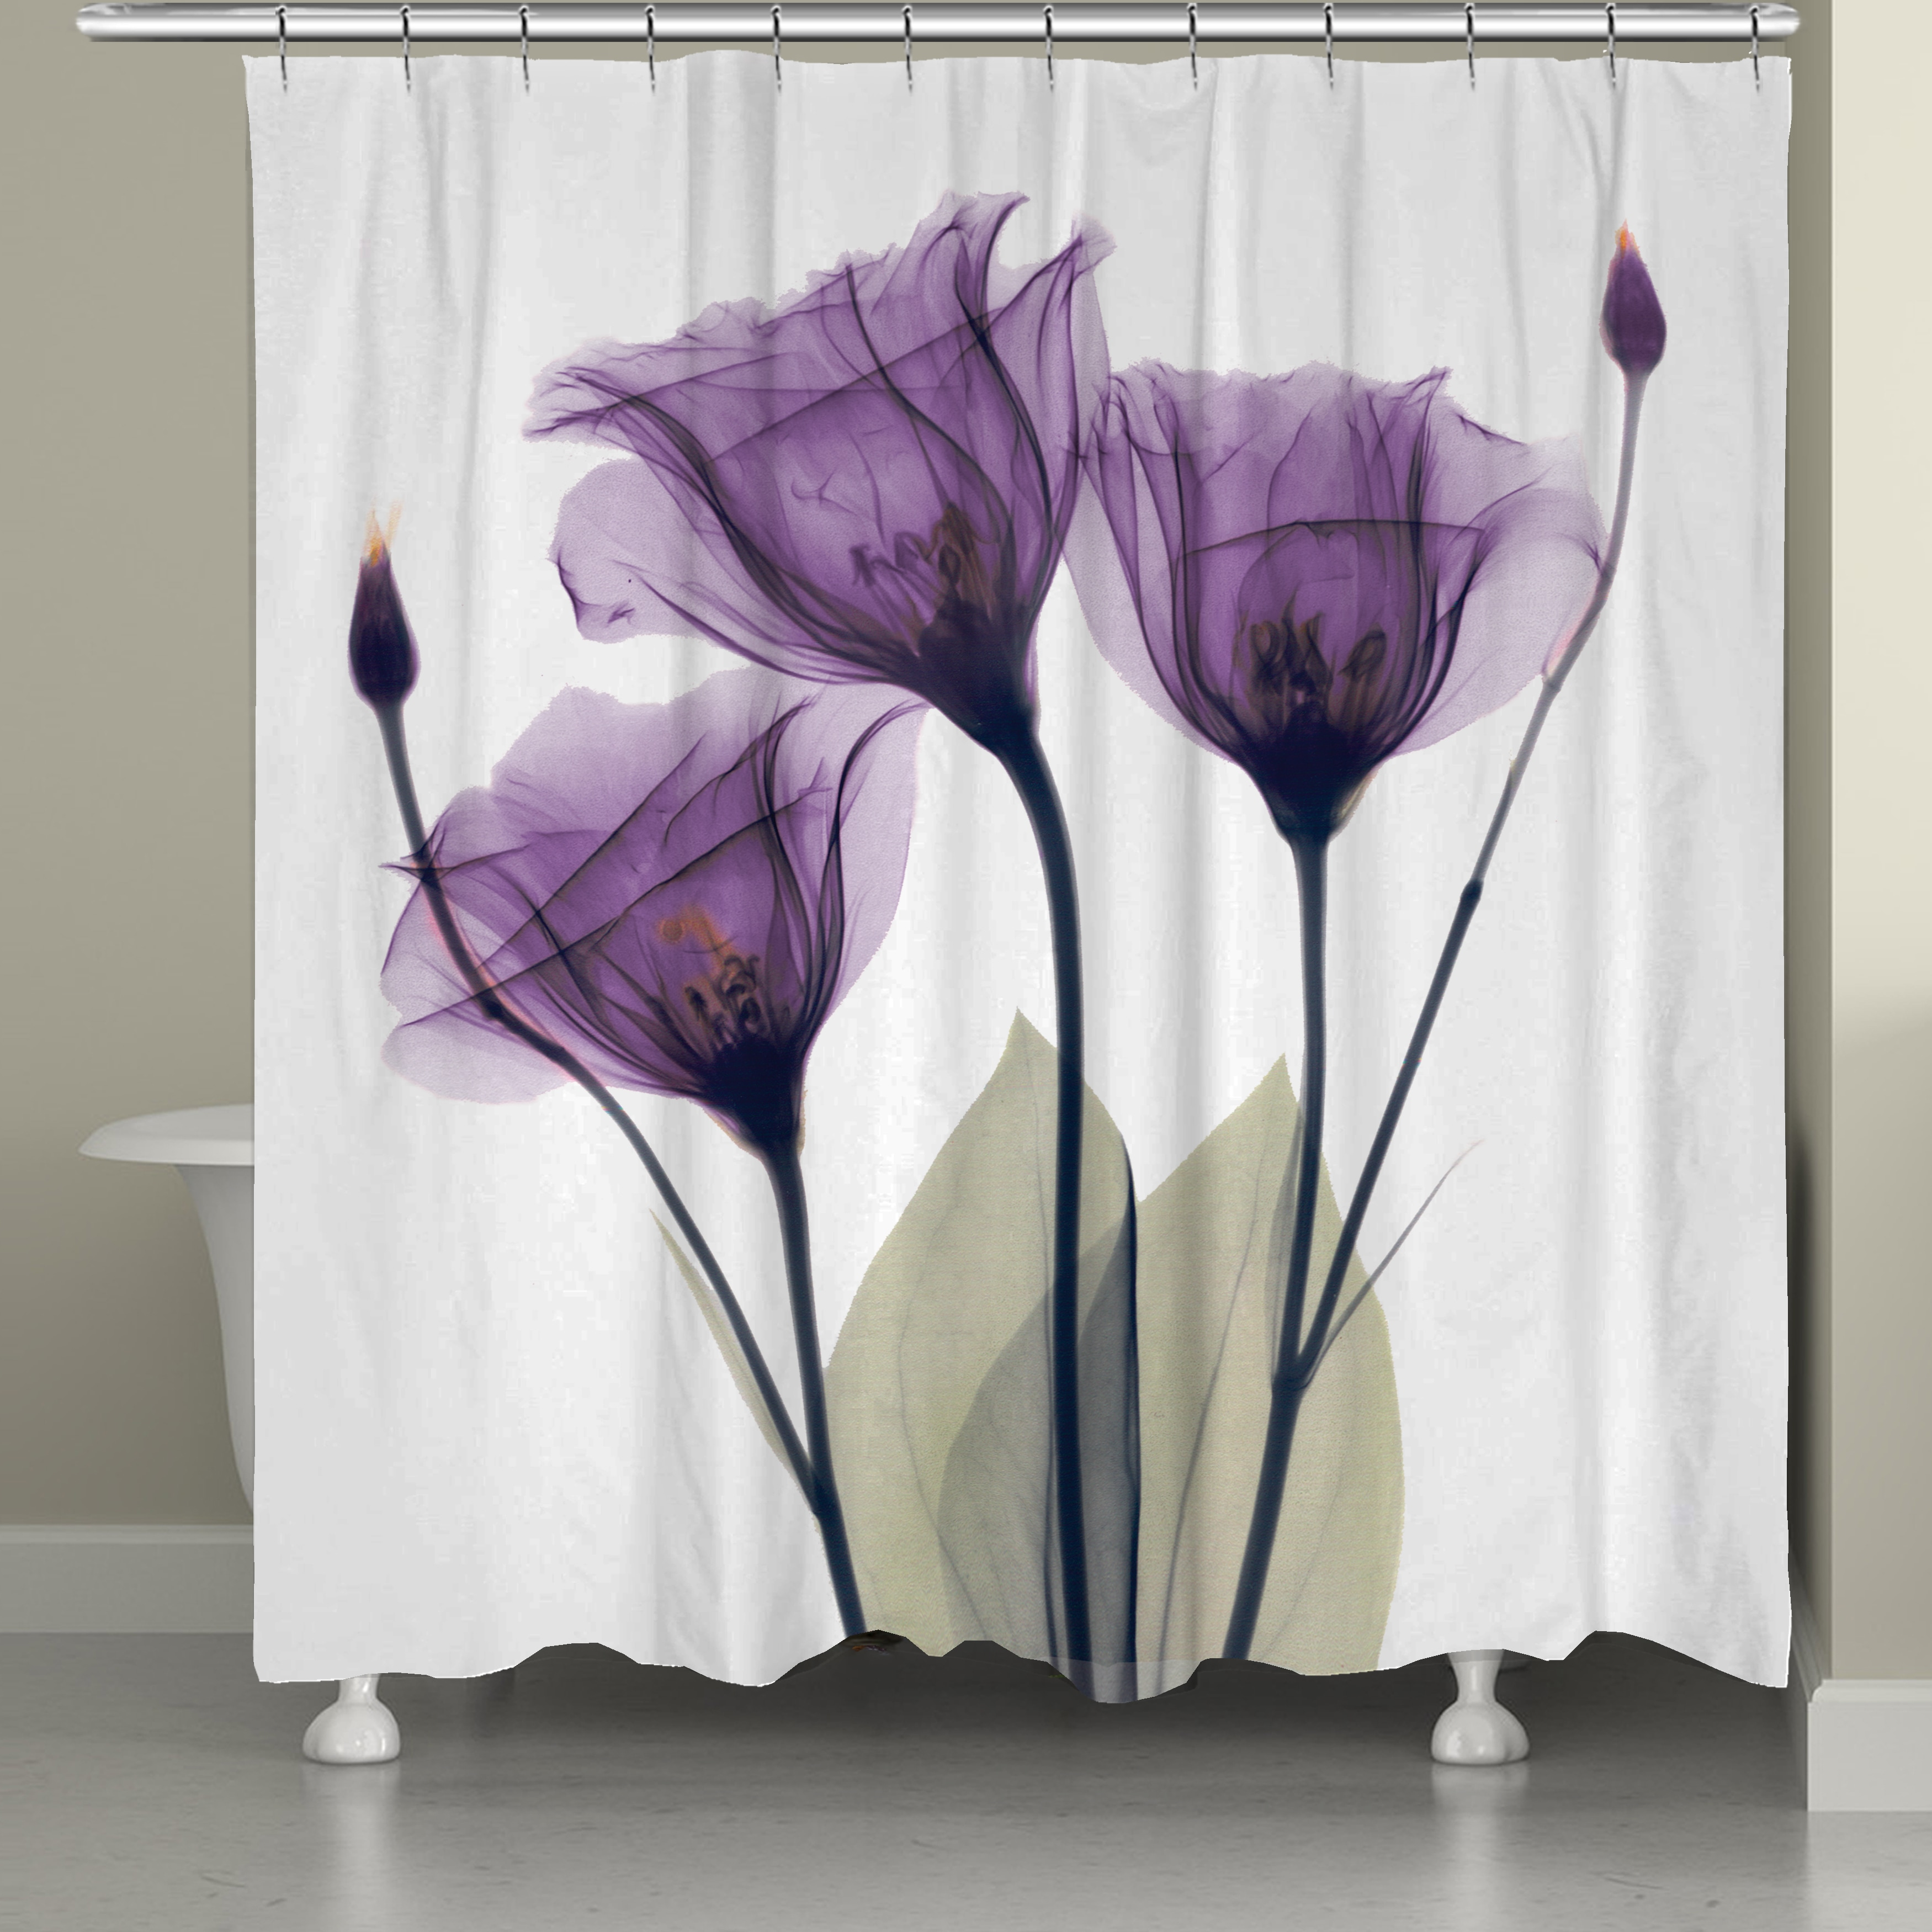 Shop Laural Home X Ray Lavender Floral 71 72 Inch Shower Curtain